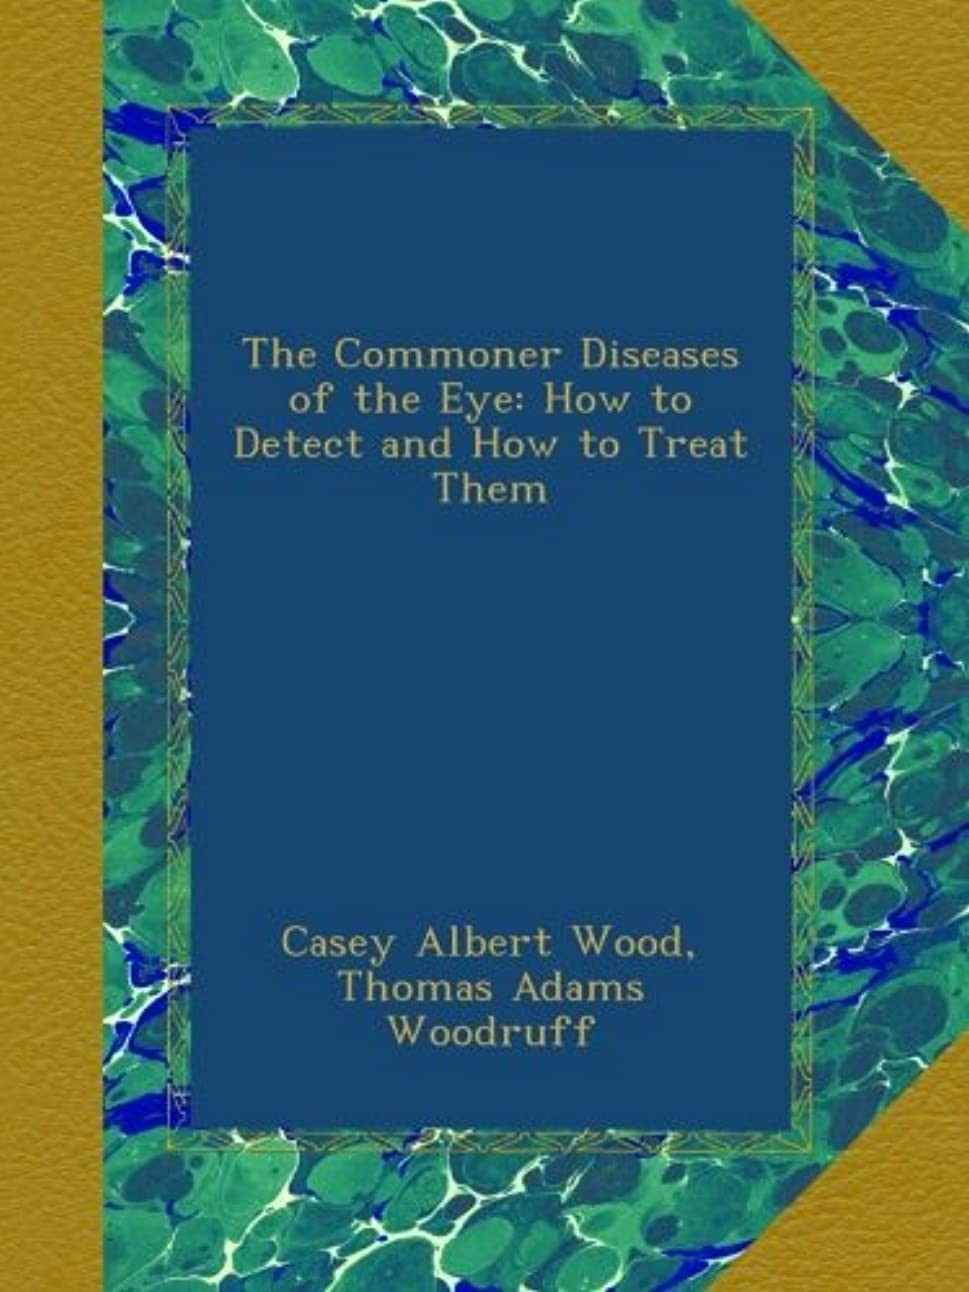 ドラマ主人の間でThe Commoner Diseases of the Eye: How to Detect and How to Treat Them